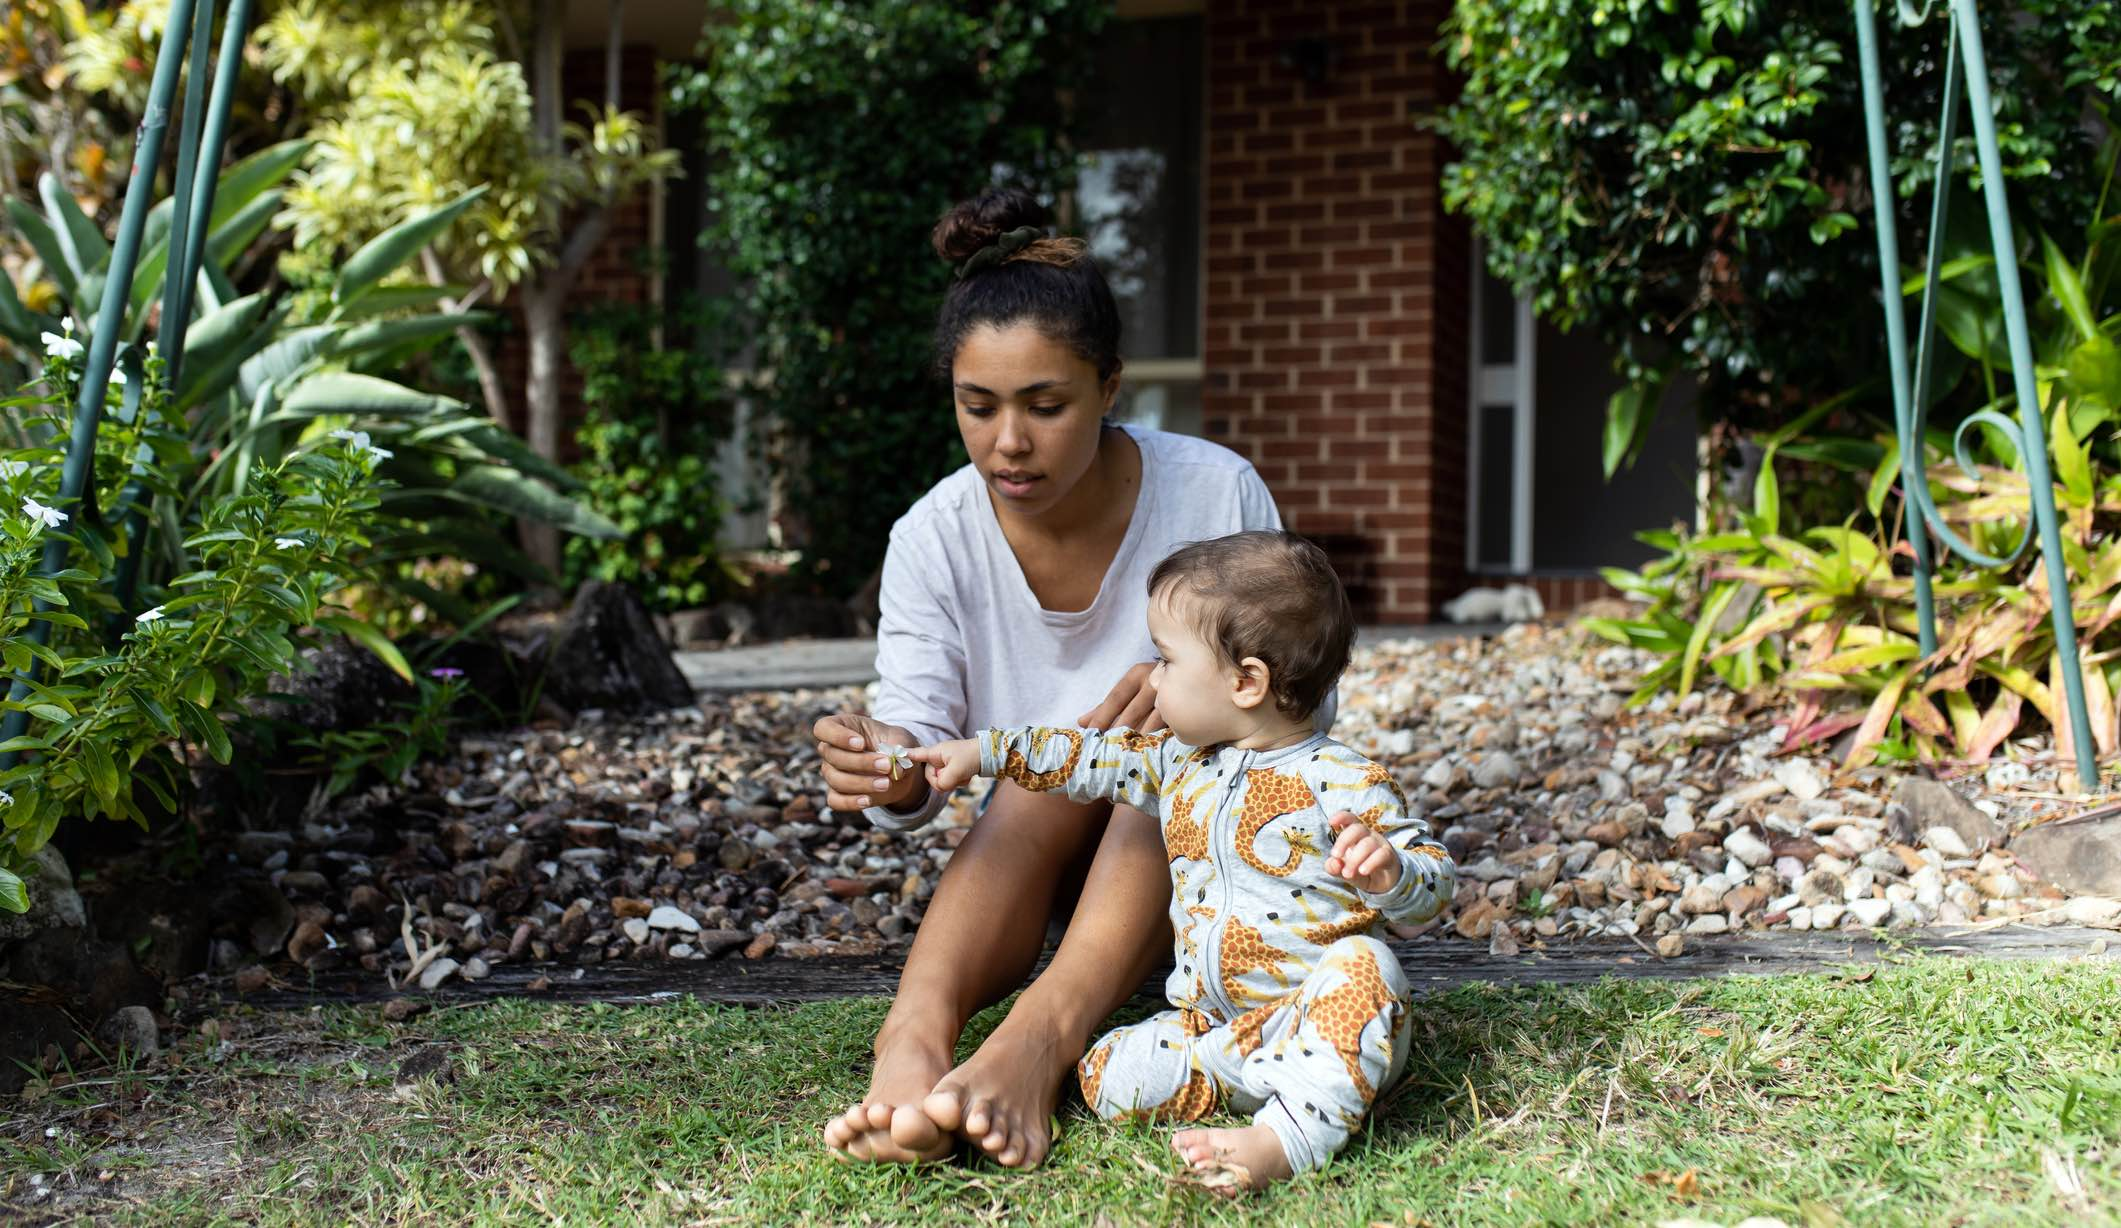 Woman and child sitting on lawn looking at garden, considering life insurance options post-covid.